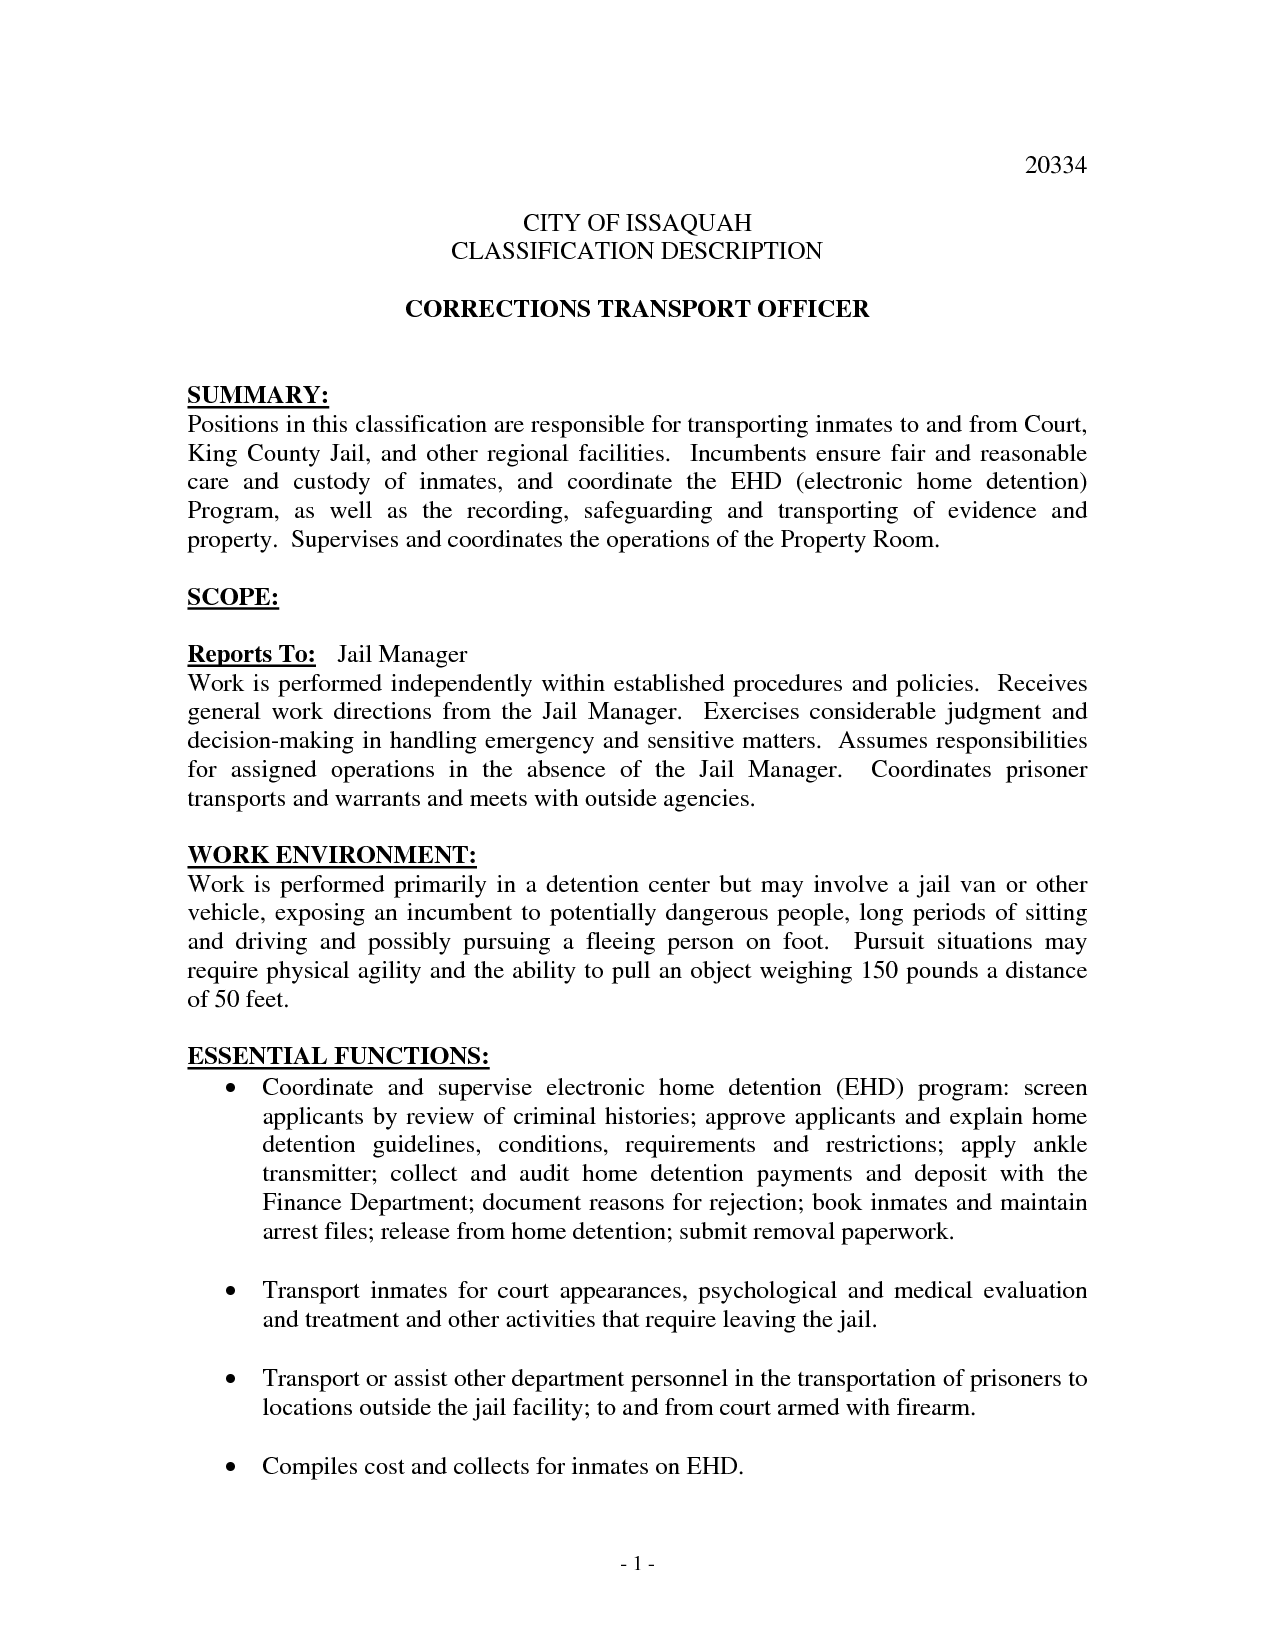 resume Sample Resume For Correctional Officer pin by resumejob on resume job pinterest format professional juvenile correctional officer templates to showcase